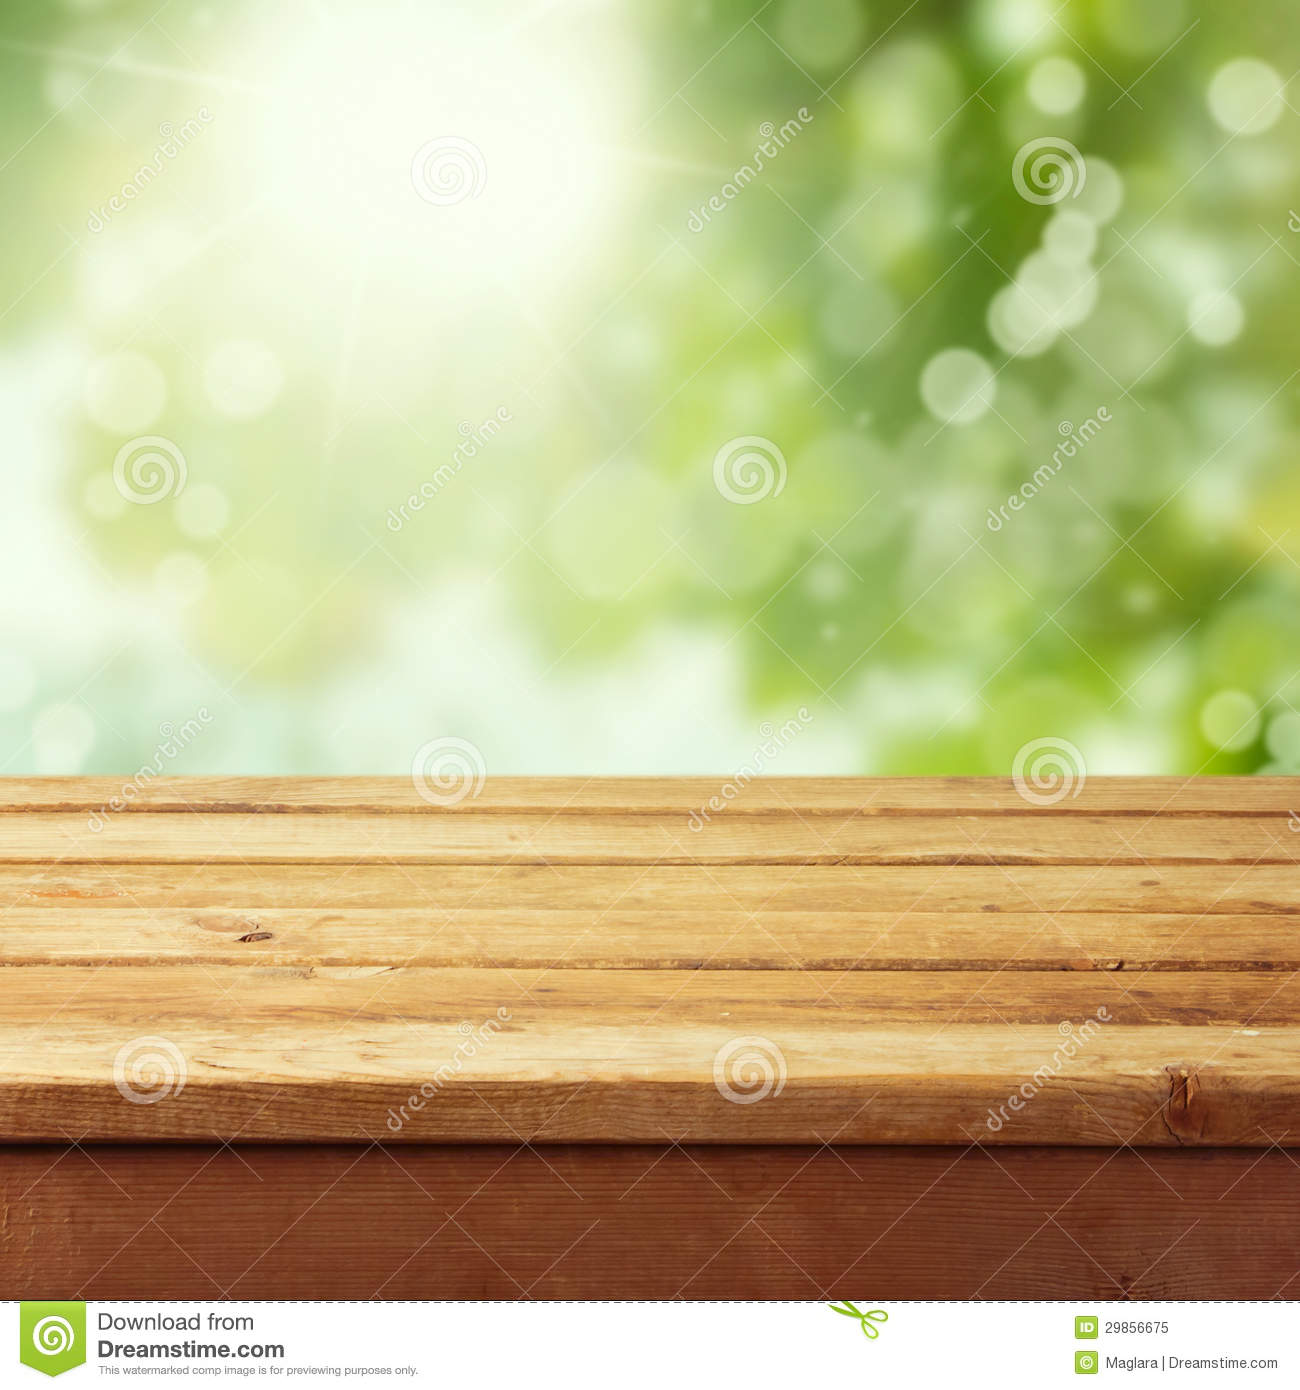 Empty Wooden Deck Table With Foliage Bokeh Royalty Free Stock Photo ...